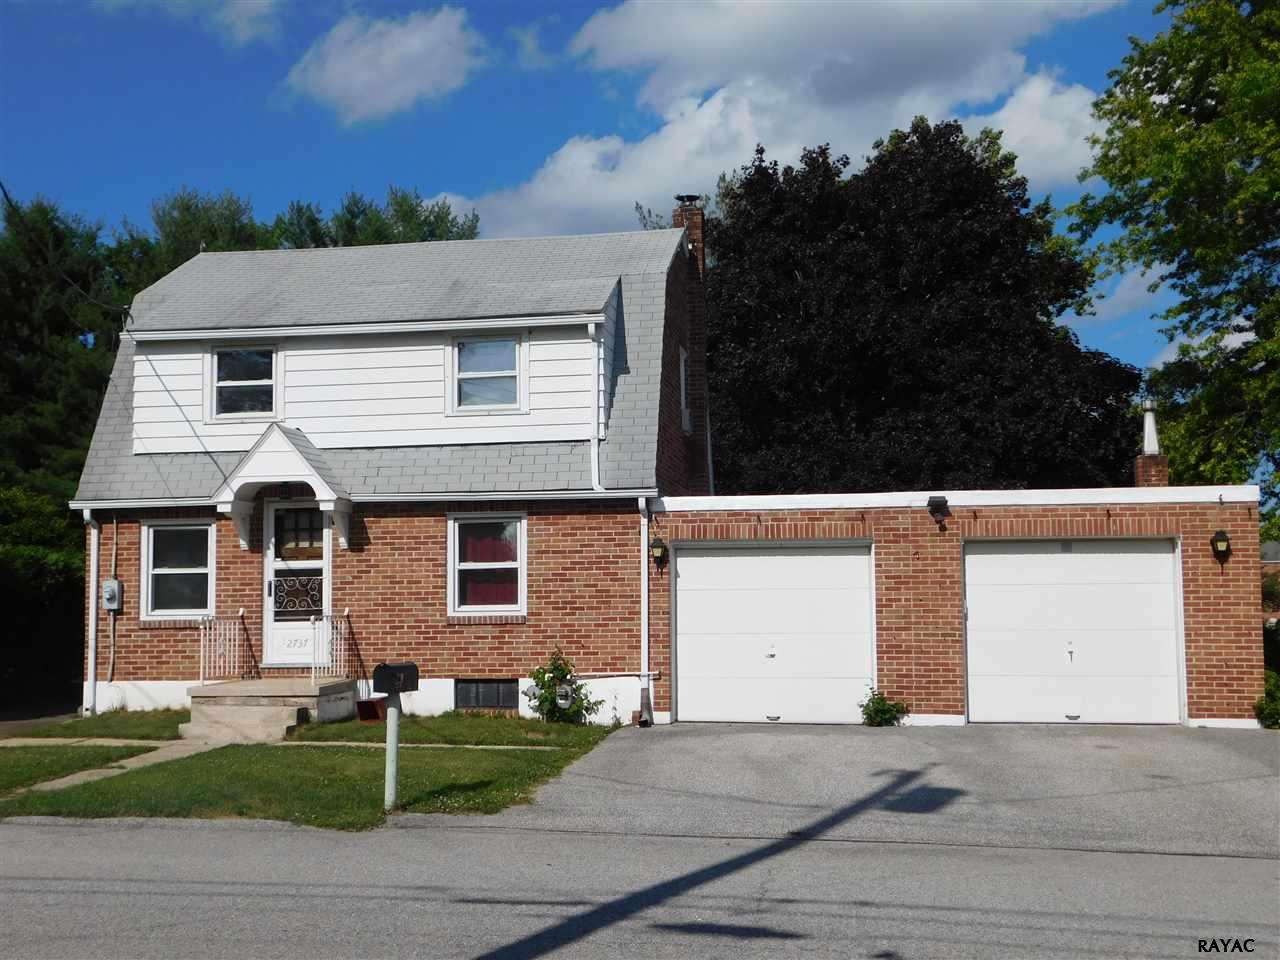 2737 Clearsprings Blvd, York, PA 17406